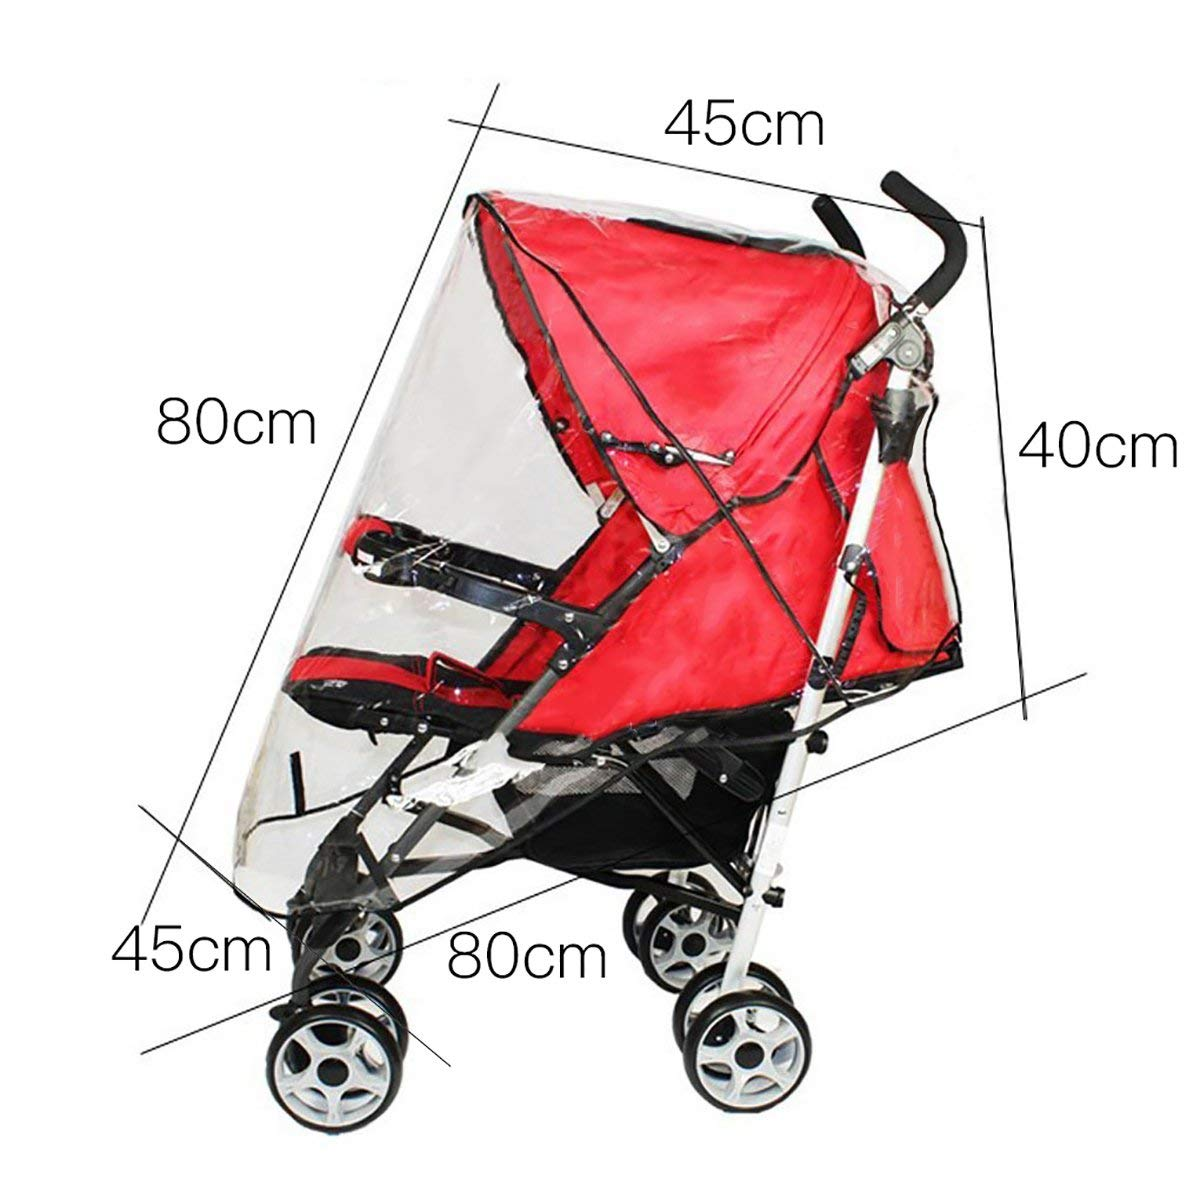 Universal Baby Stroller Rain Cover Travel Outdoor Pushchair Rain Cover Large for Stroller Pram Buggy Baby Carriage